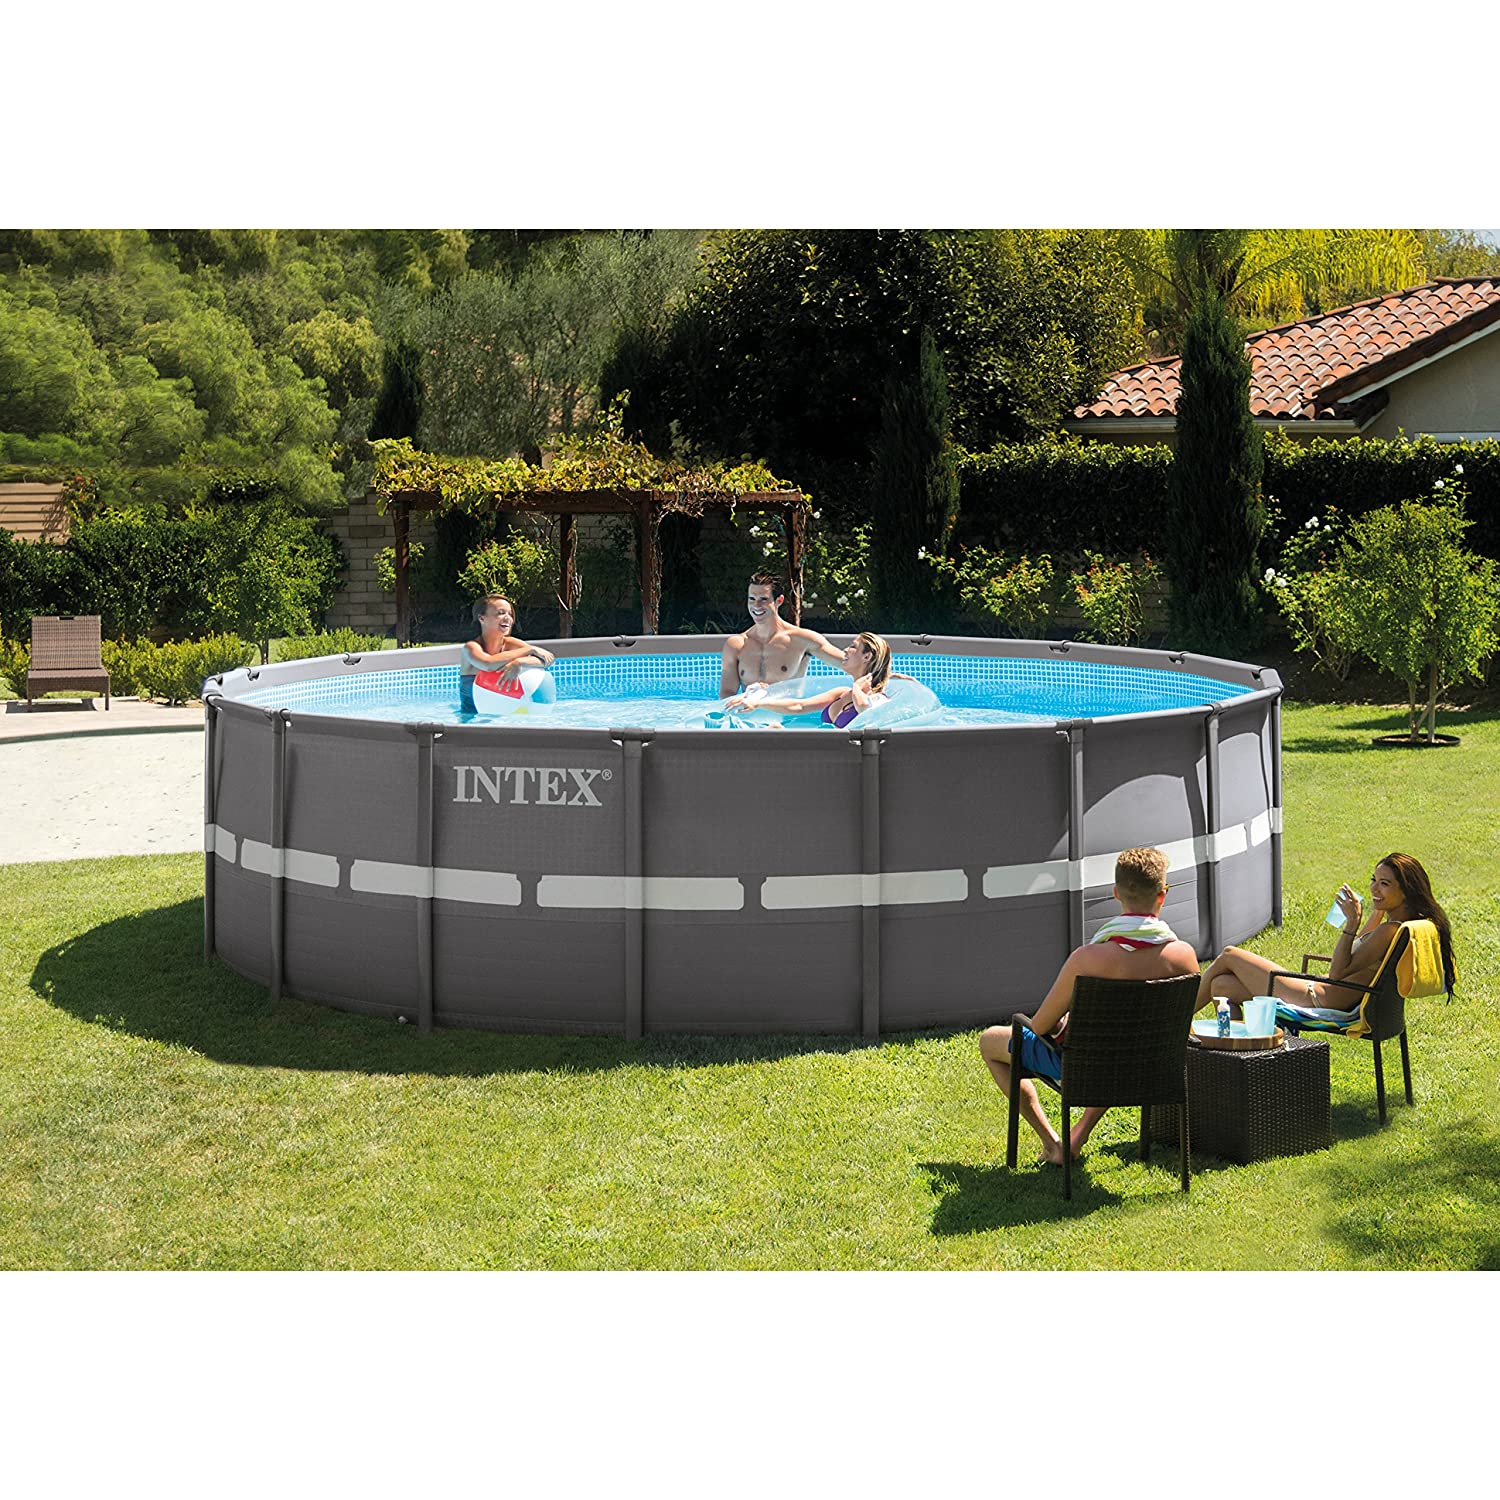 Intex 18ft X 52in Ultra Frame Pool Set Black Friday Deal 2020